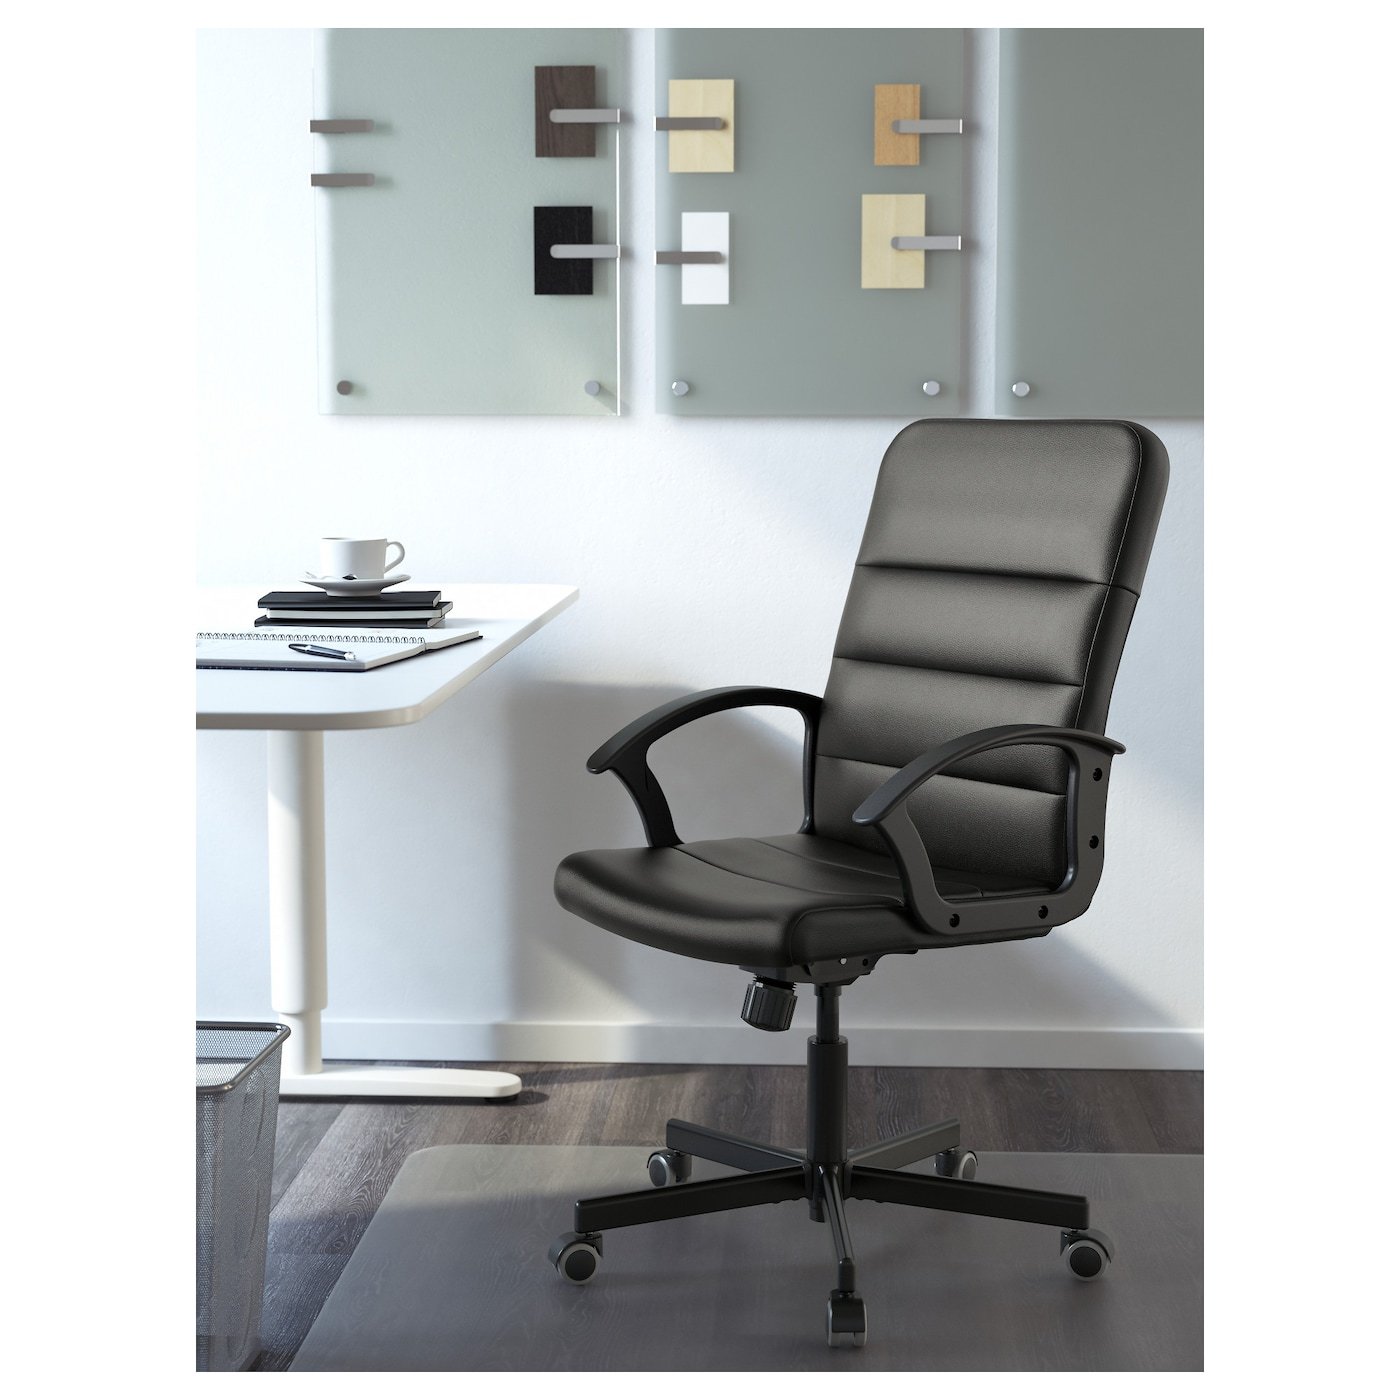 IKEA TORKEL swivel chair You sit comfortably since the chair is adjustable in height.